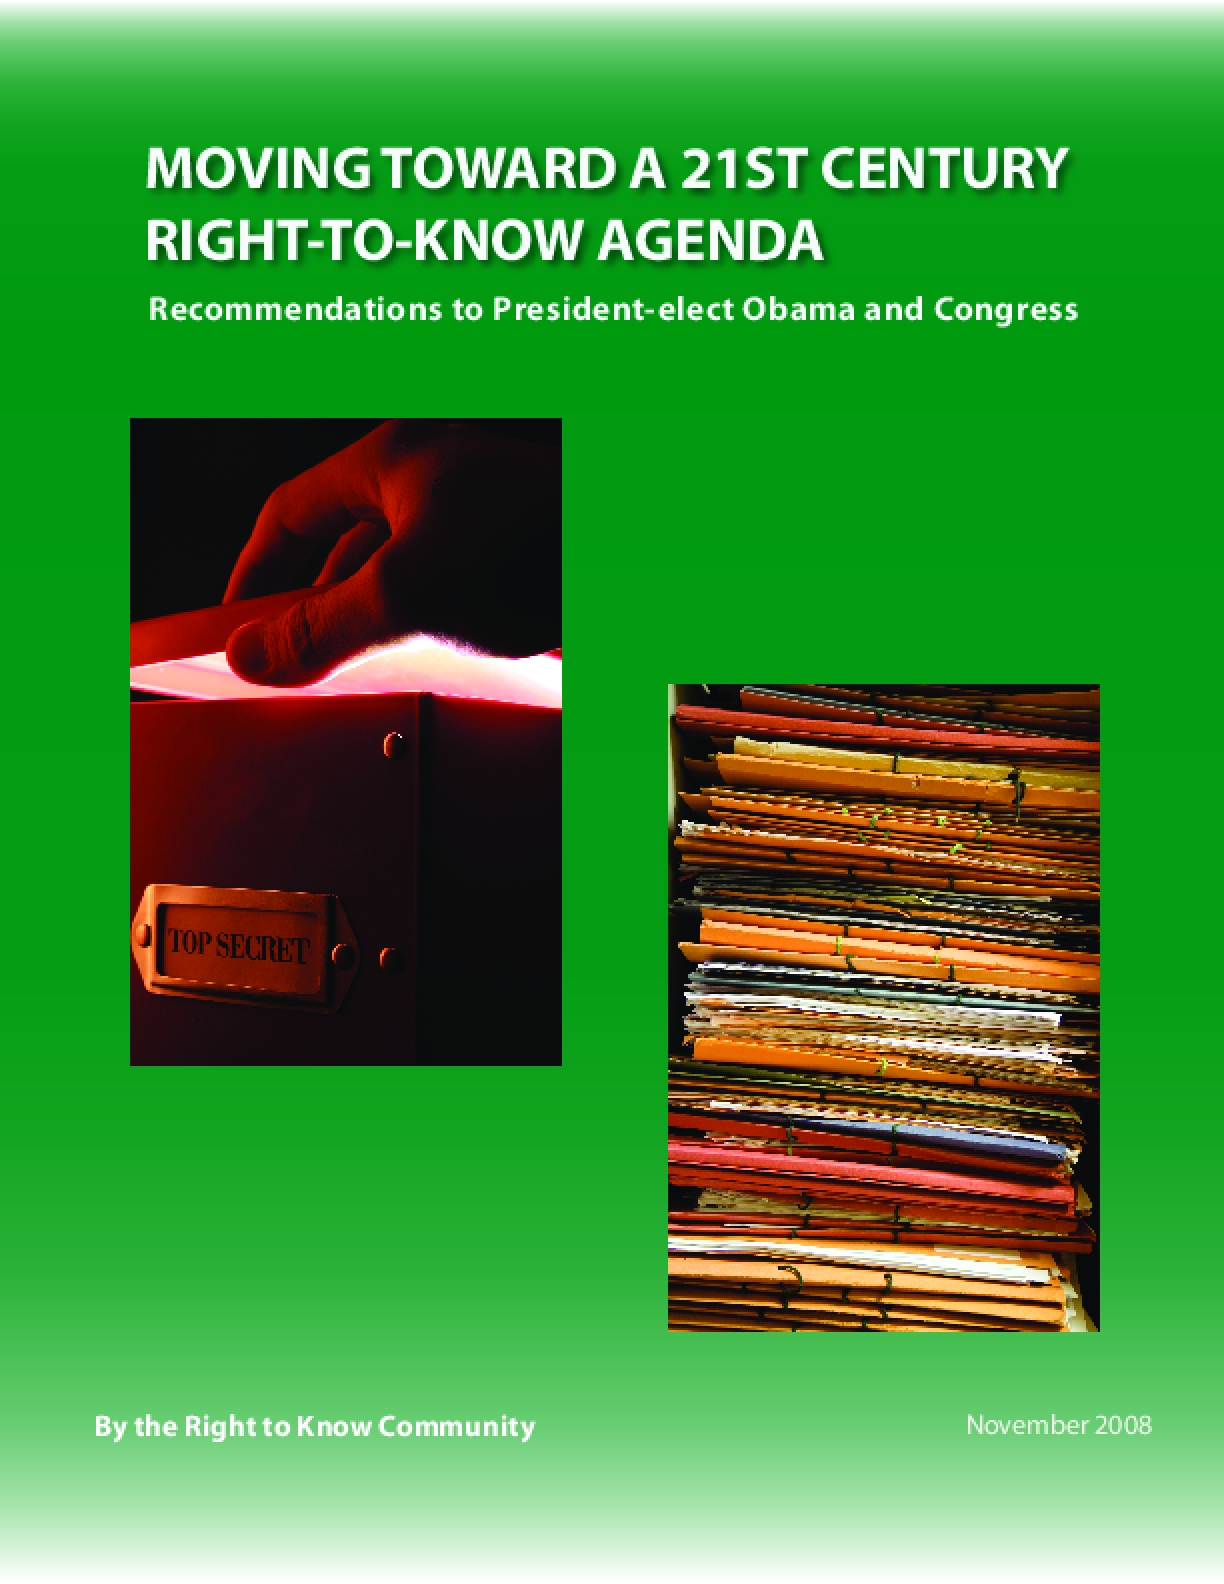 Moving Toward a 21st Century Right-to-Know Agenda